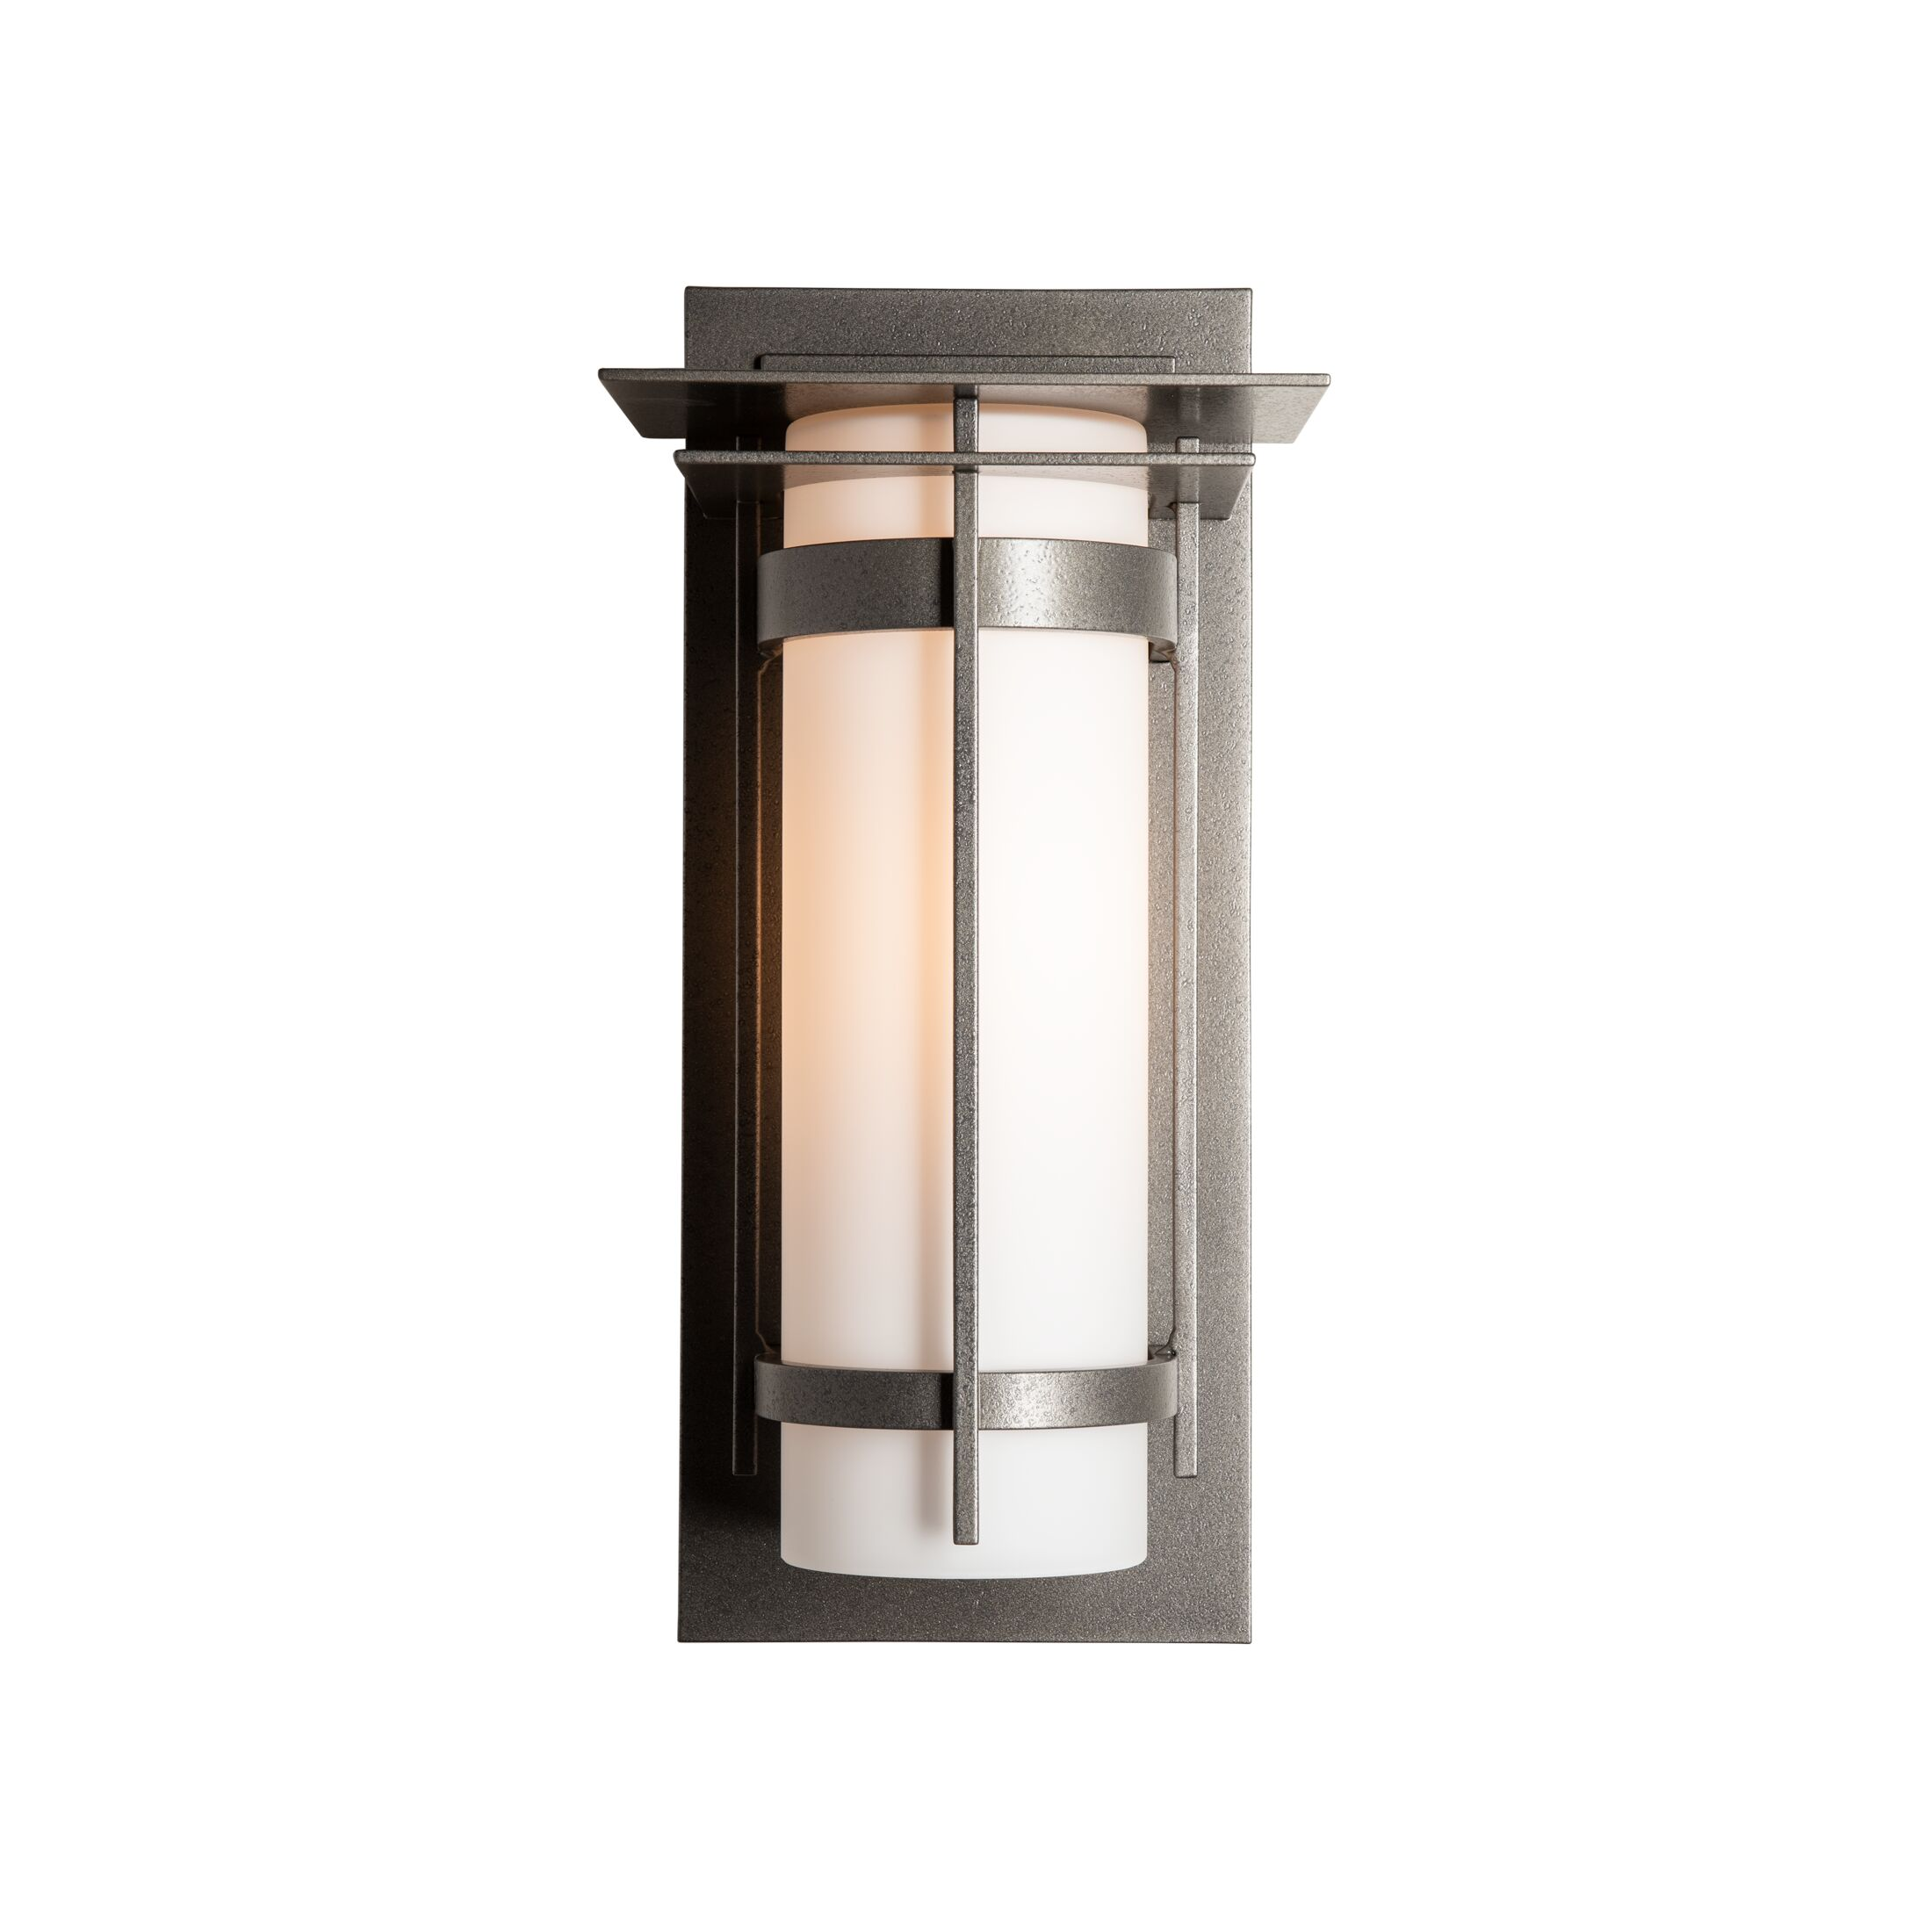 Thumbnail for Banded with Top Plate Outdoor Sconce